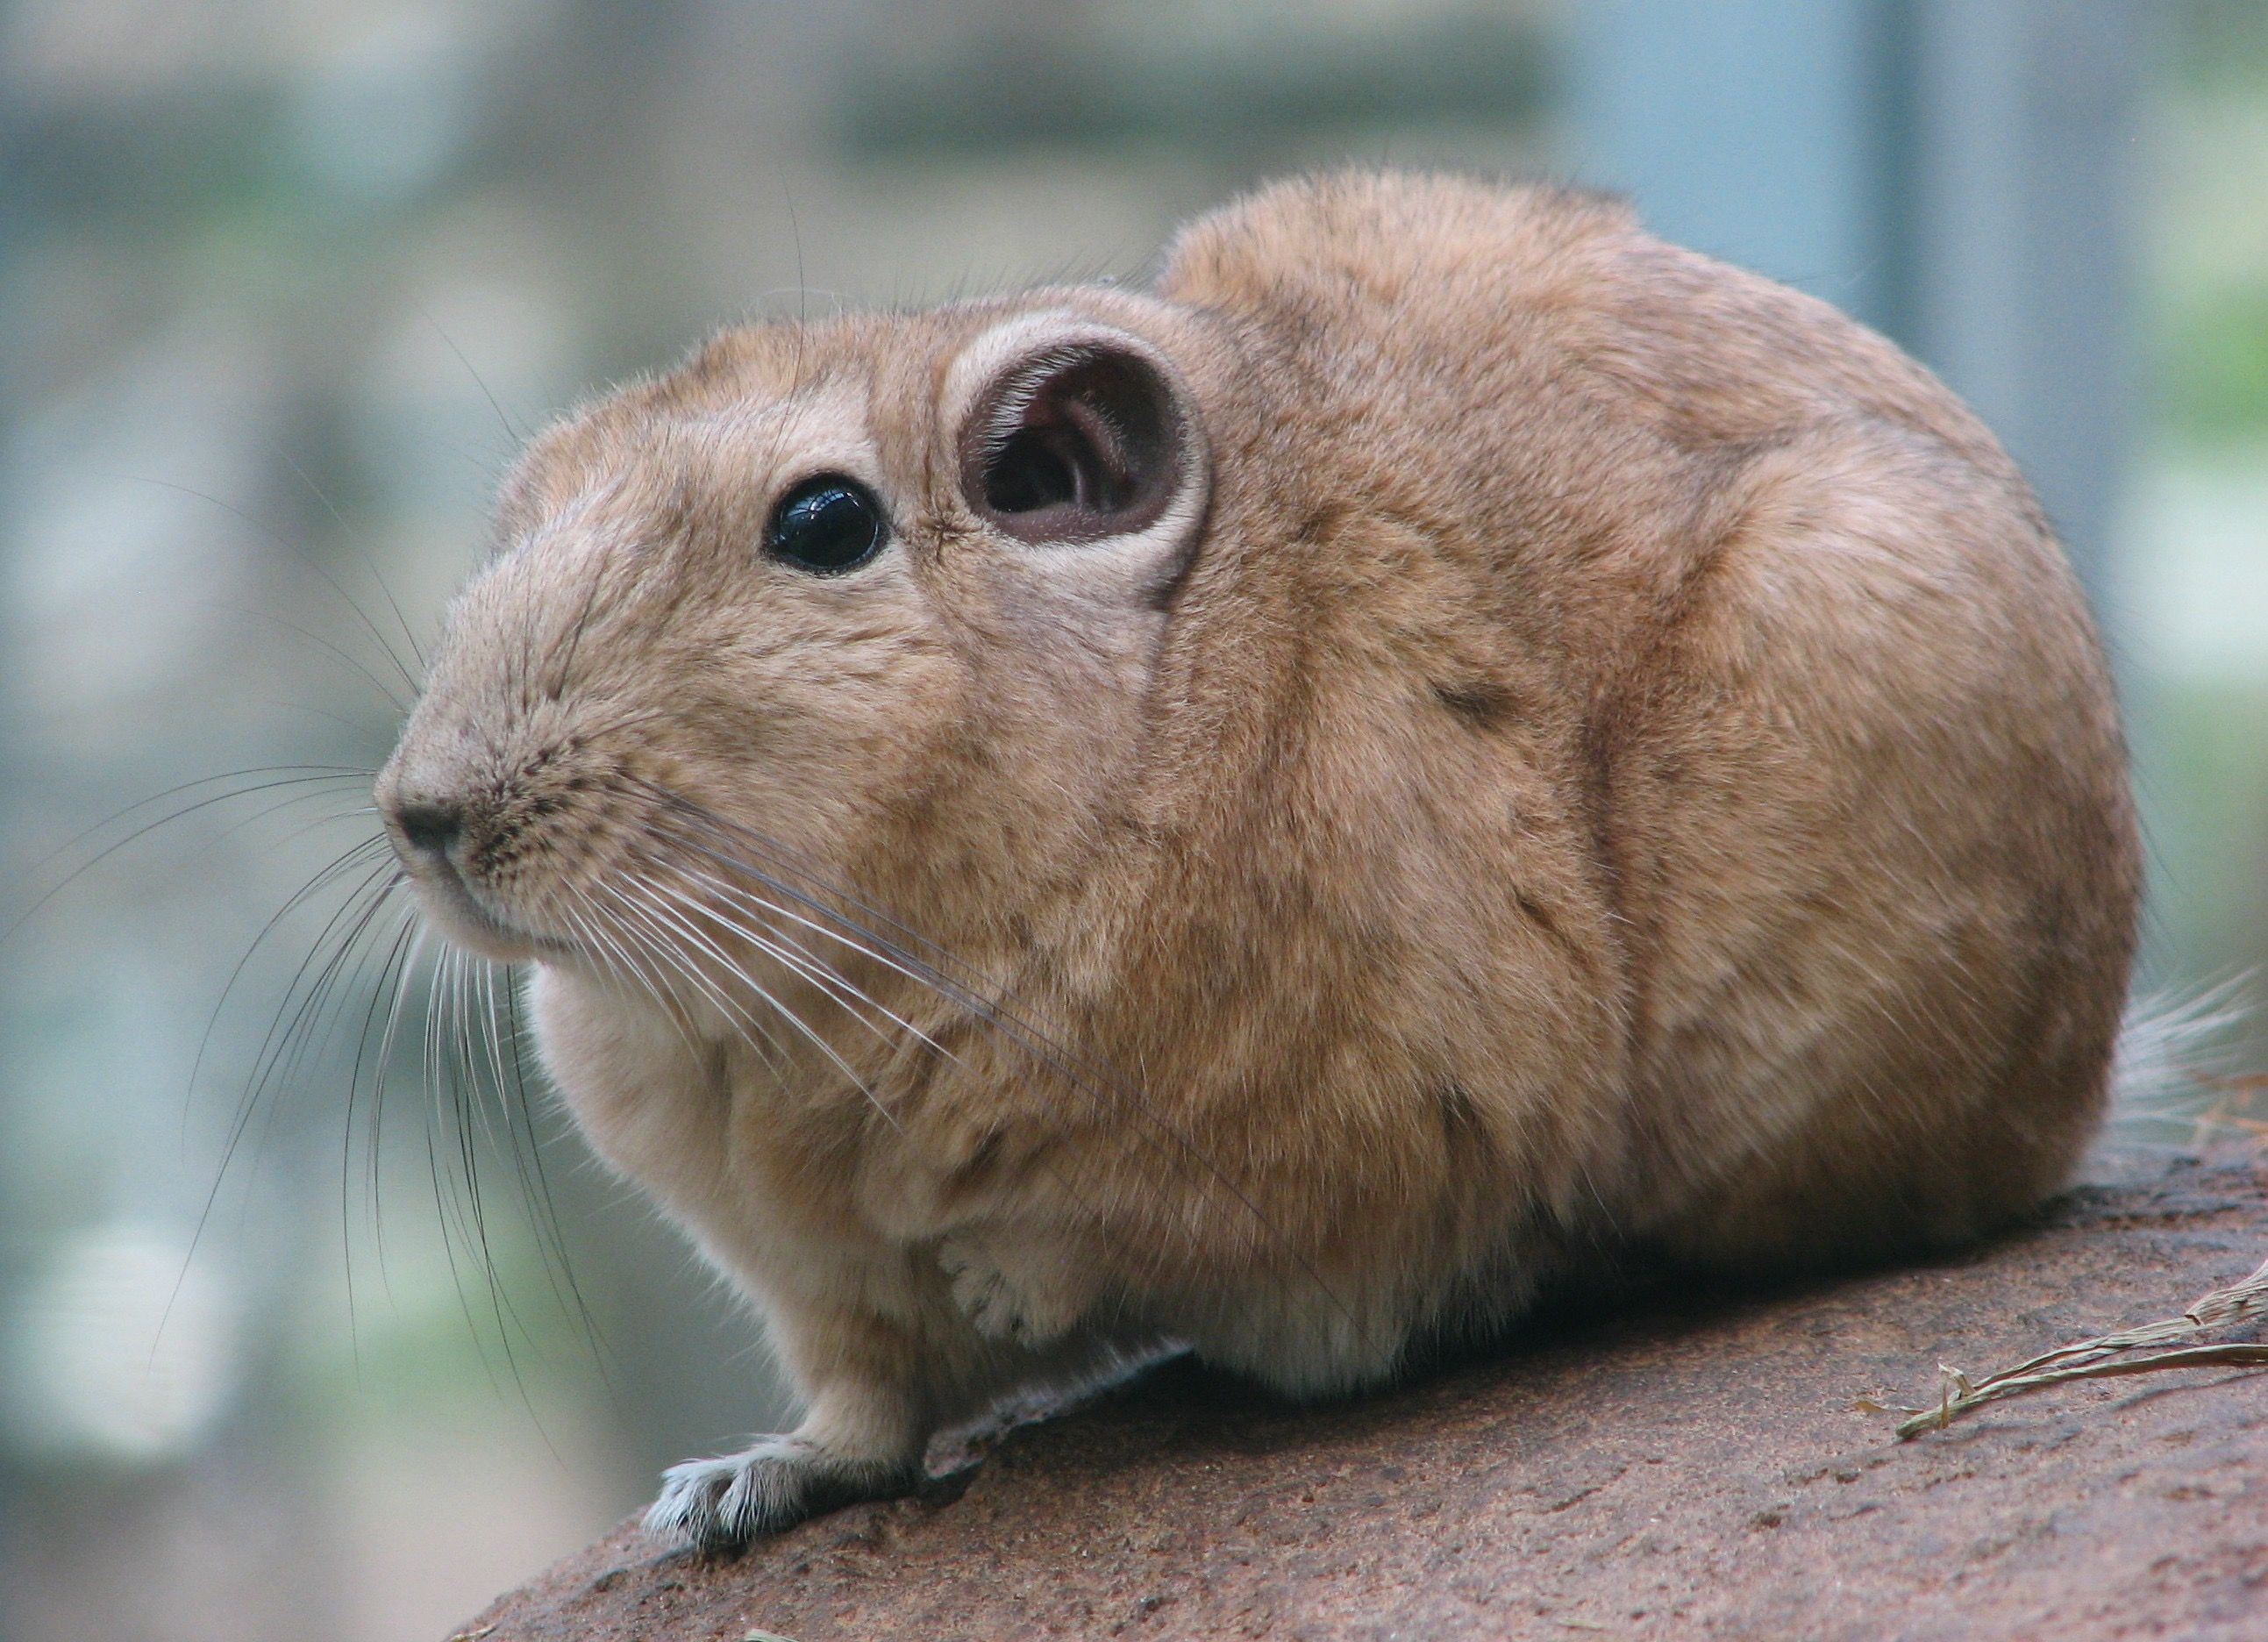 Gundis or comb rats are a group of small, stocky rodents